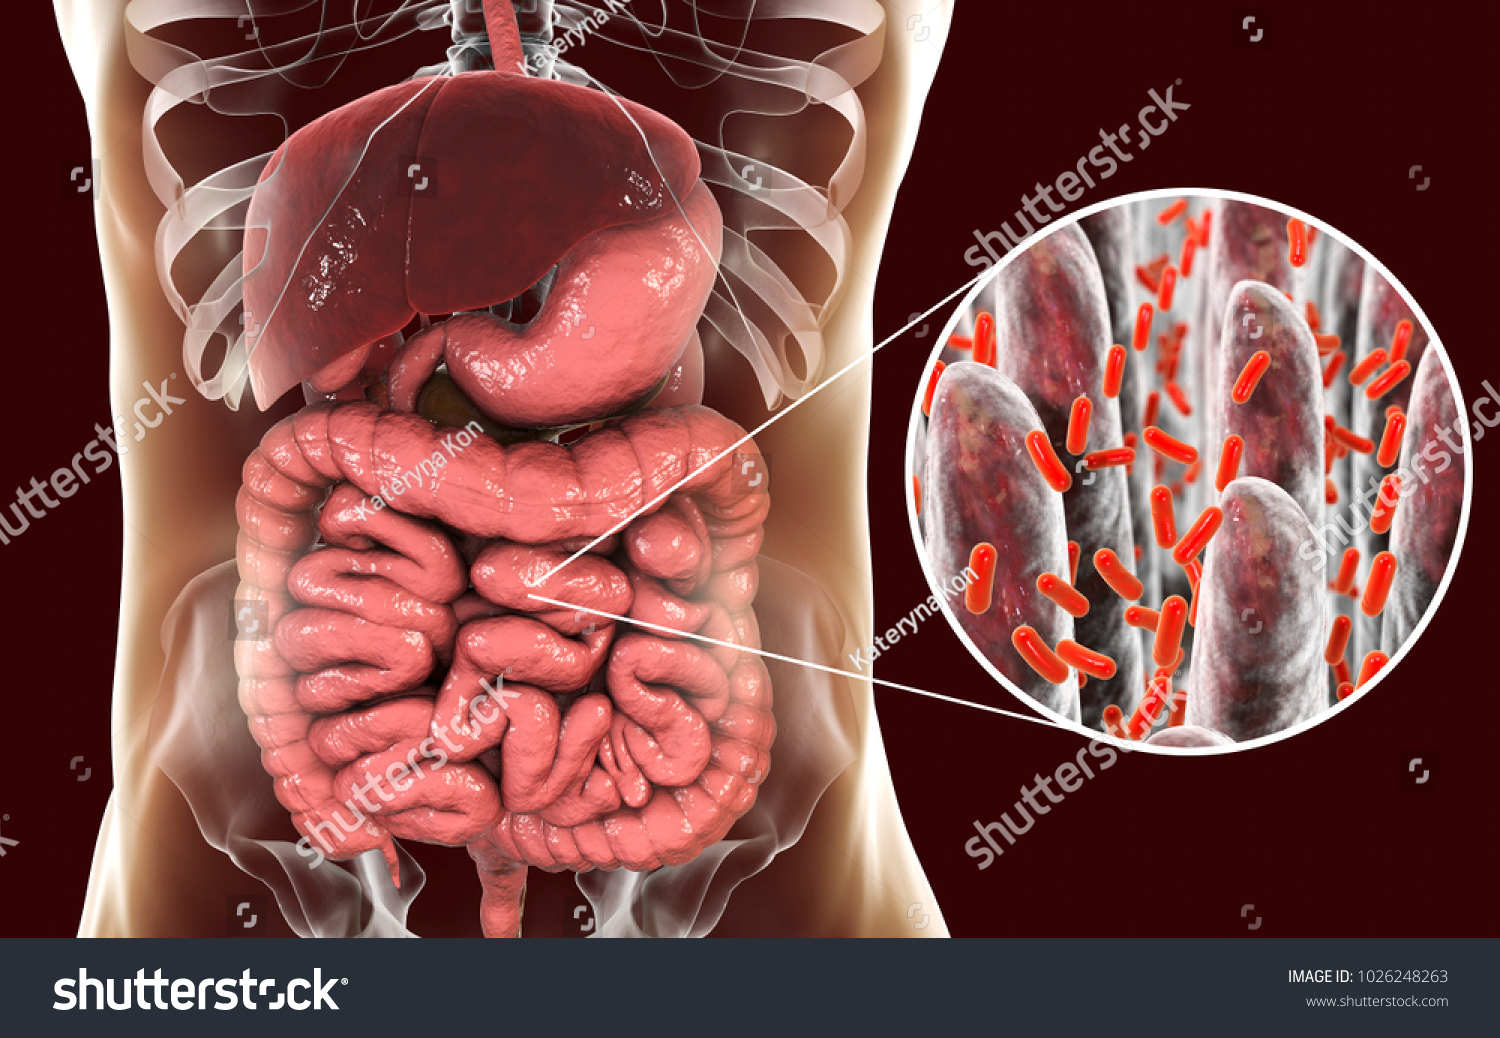 Intestinal Microbiome Anatomy Human Digestive System Stock